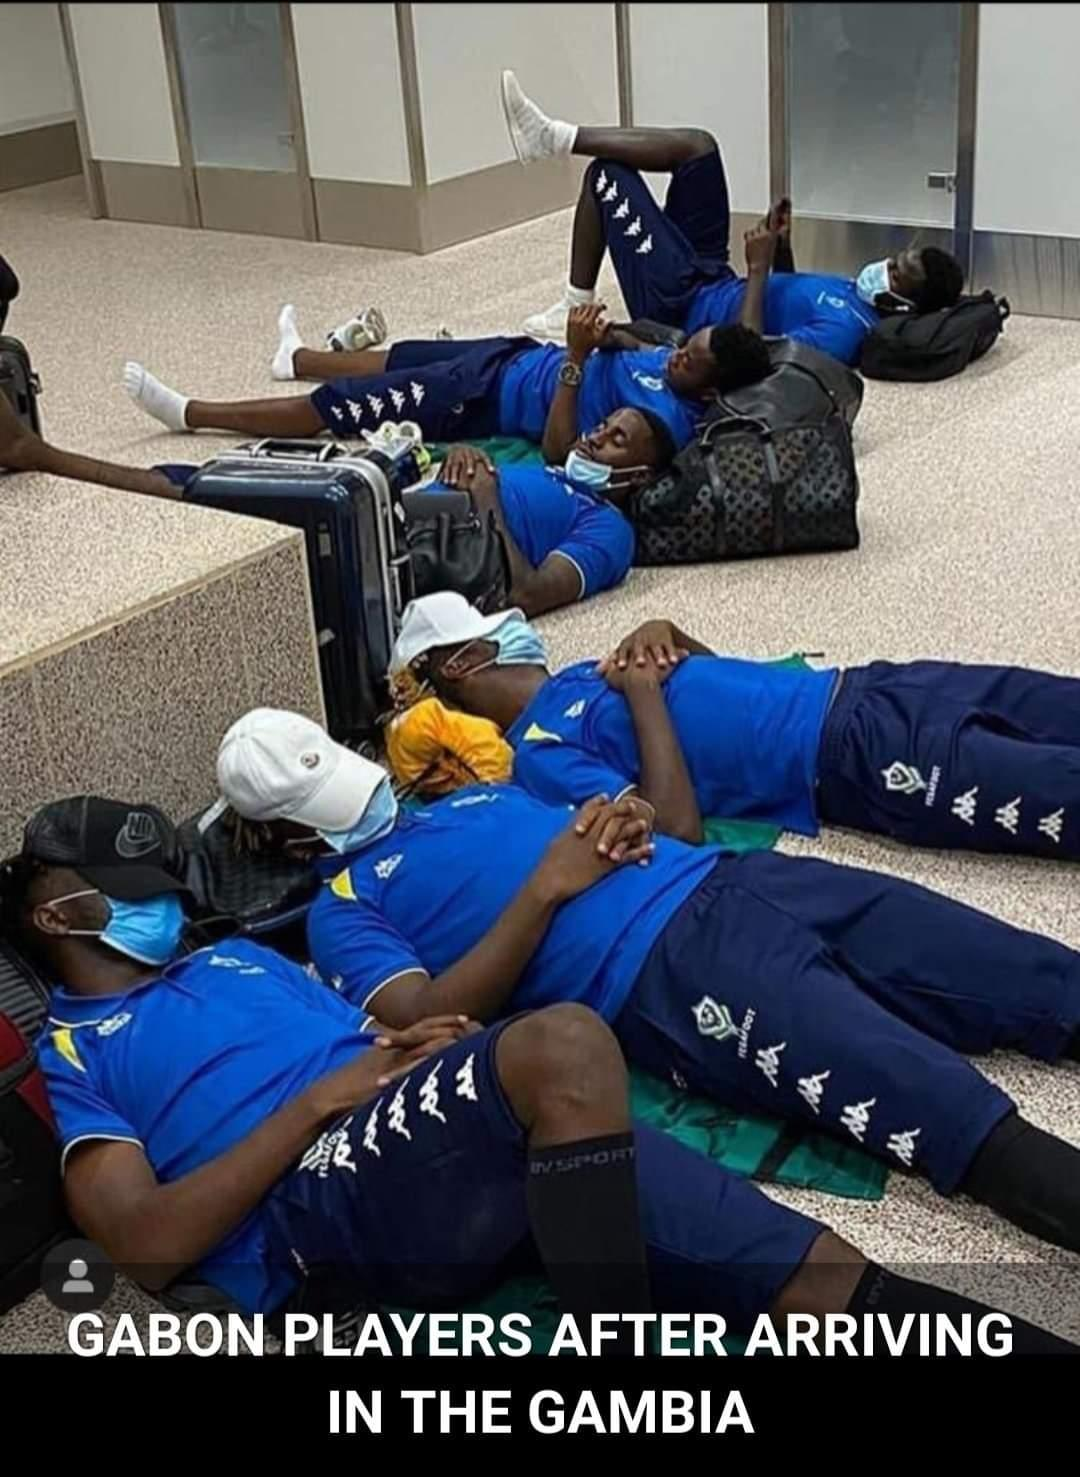 CAF fines Gambia $100,000 over Gabon incident